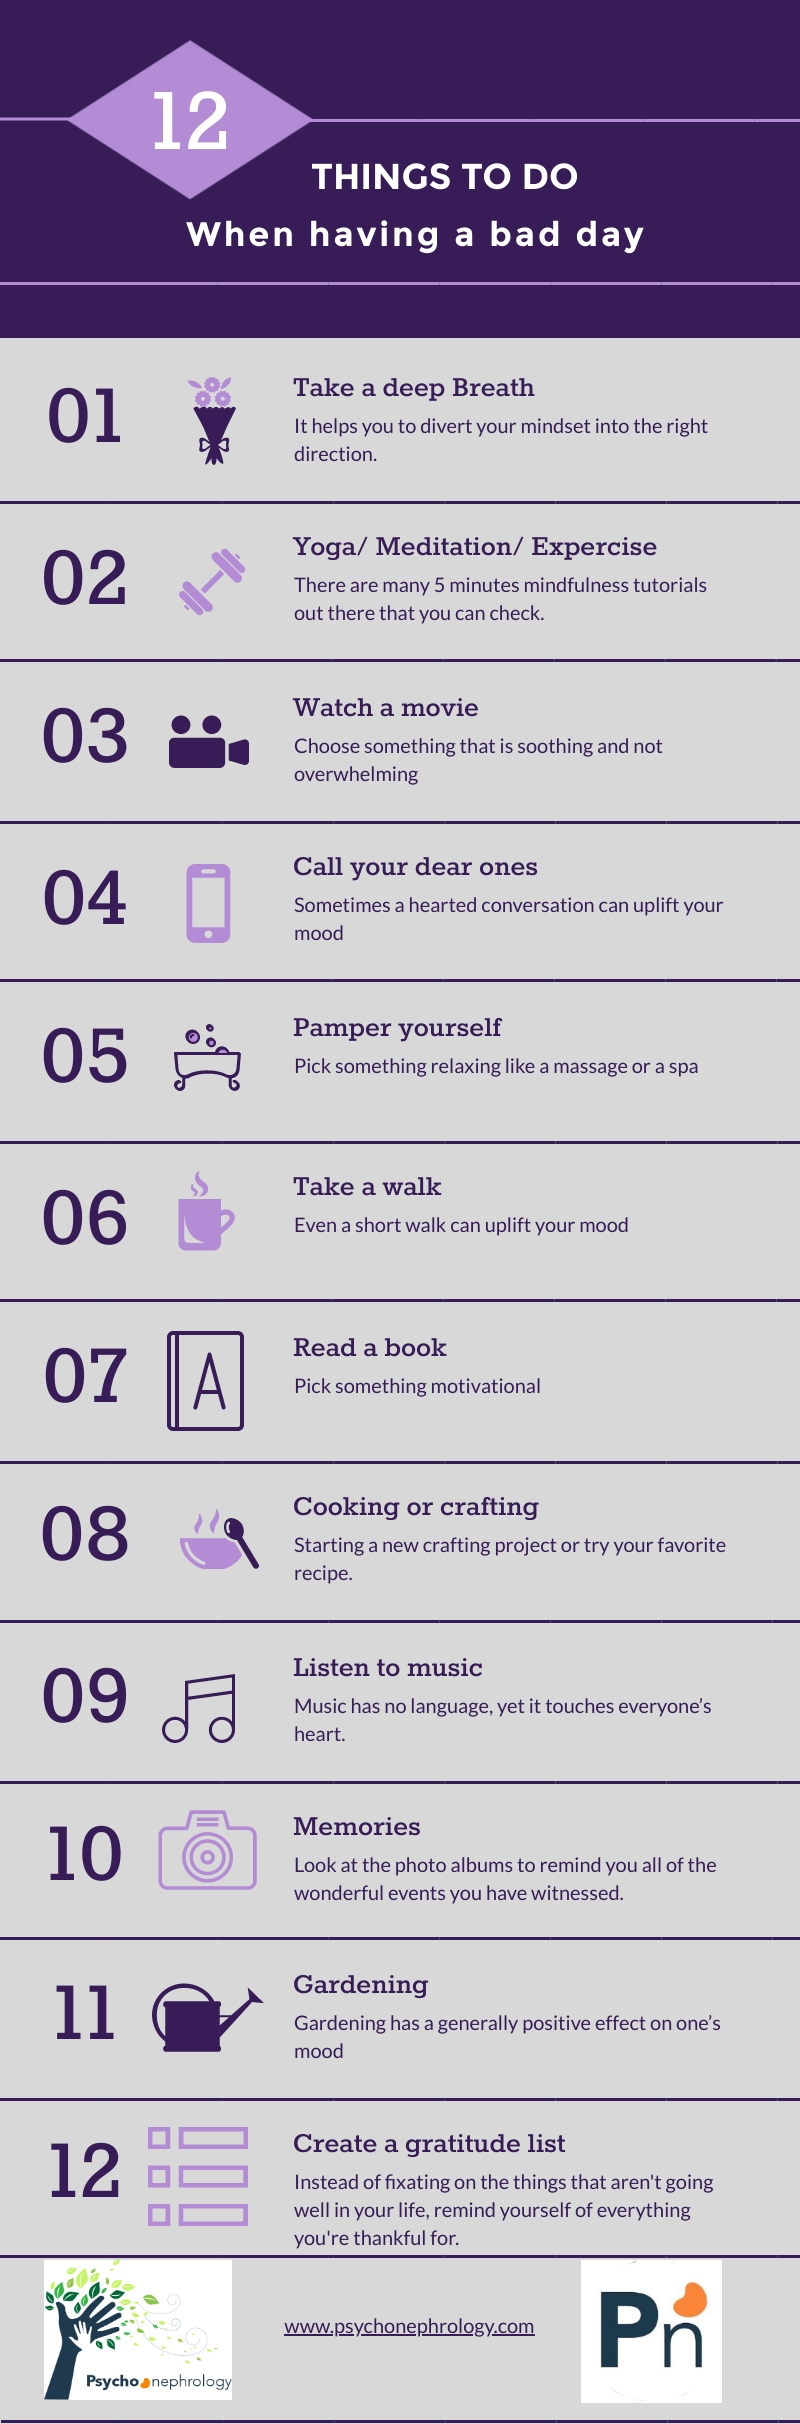 12 things to do when having a bad day